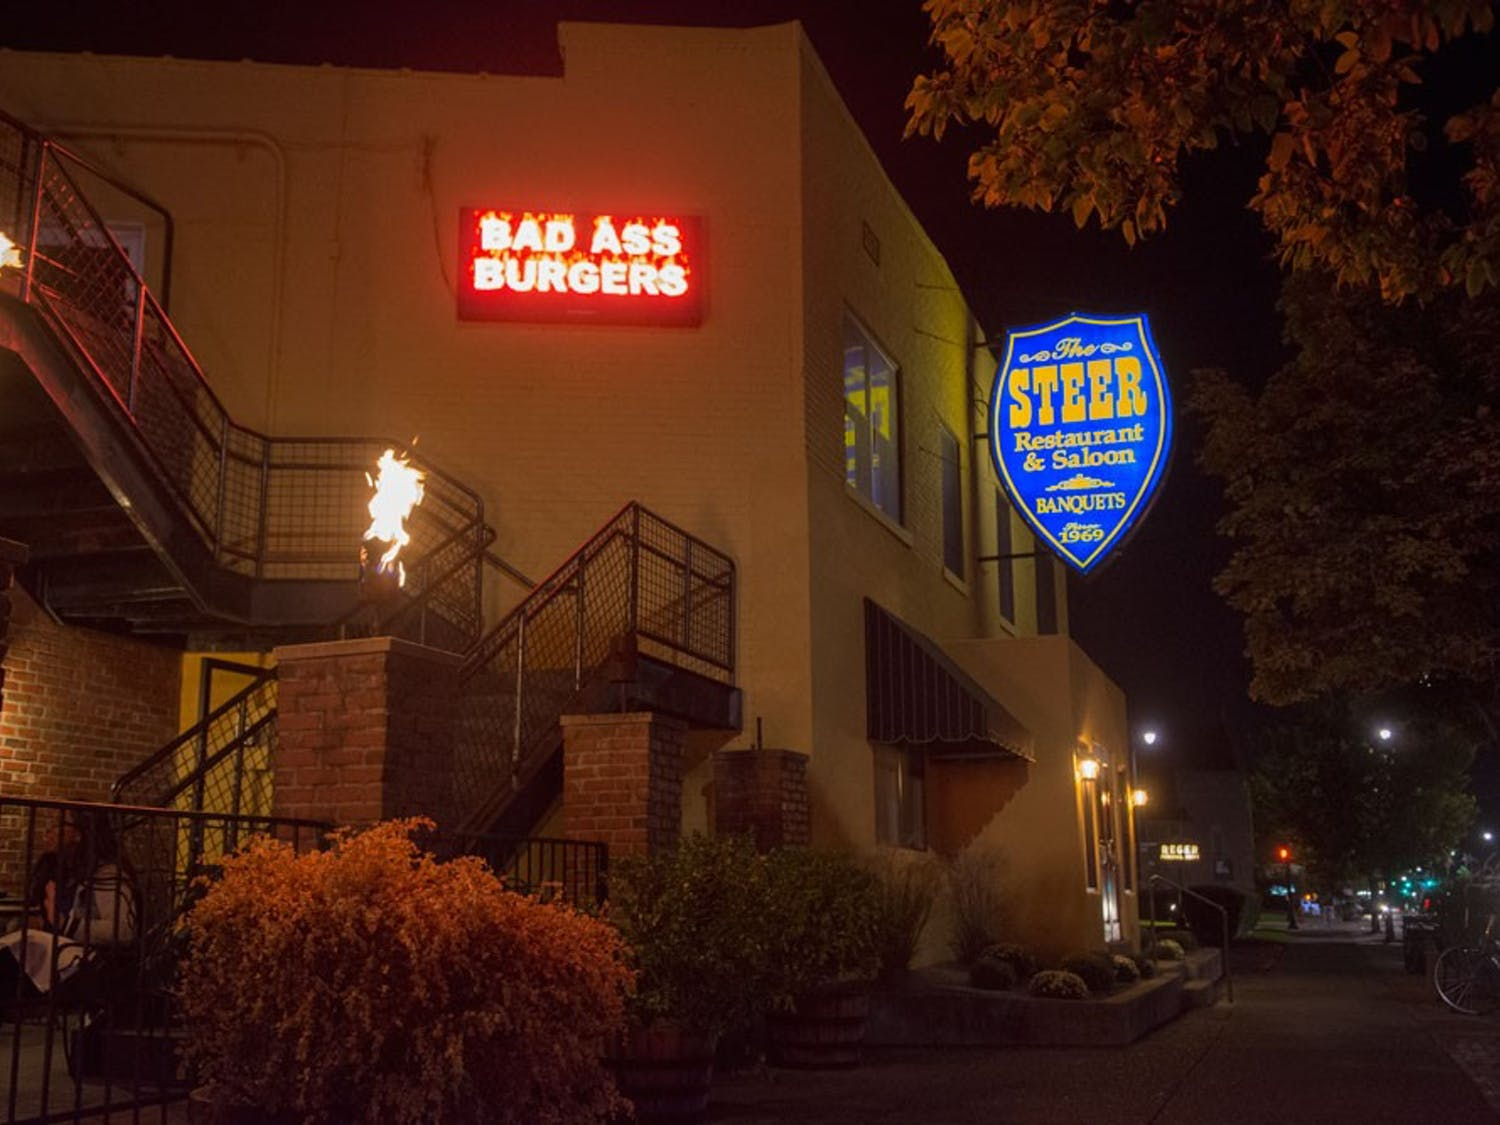 The Steer is located on Main Street within a walking distance of South Campus and its surrounding neighborhood. The Steer serves as the local choice for students who wish to go out on Friday and Saturday nights.